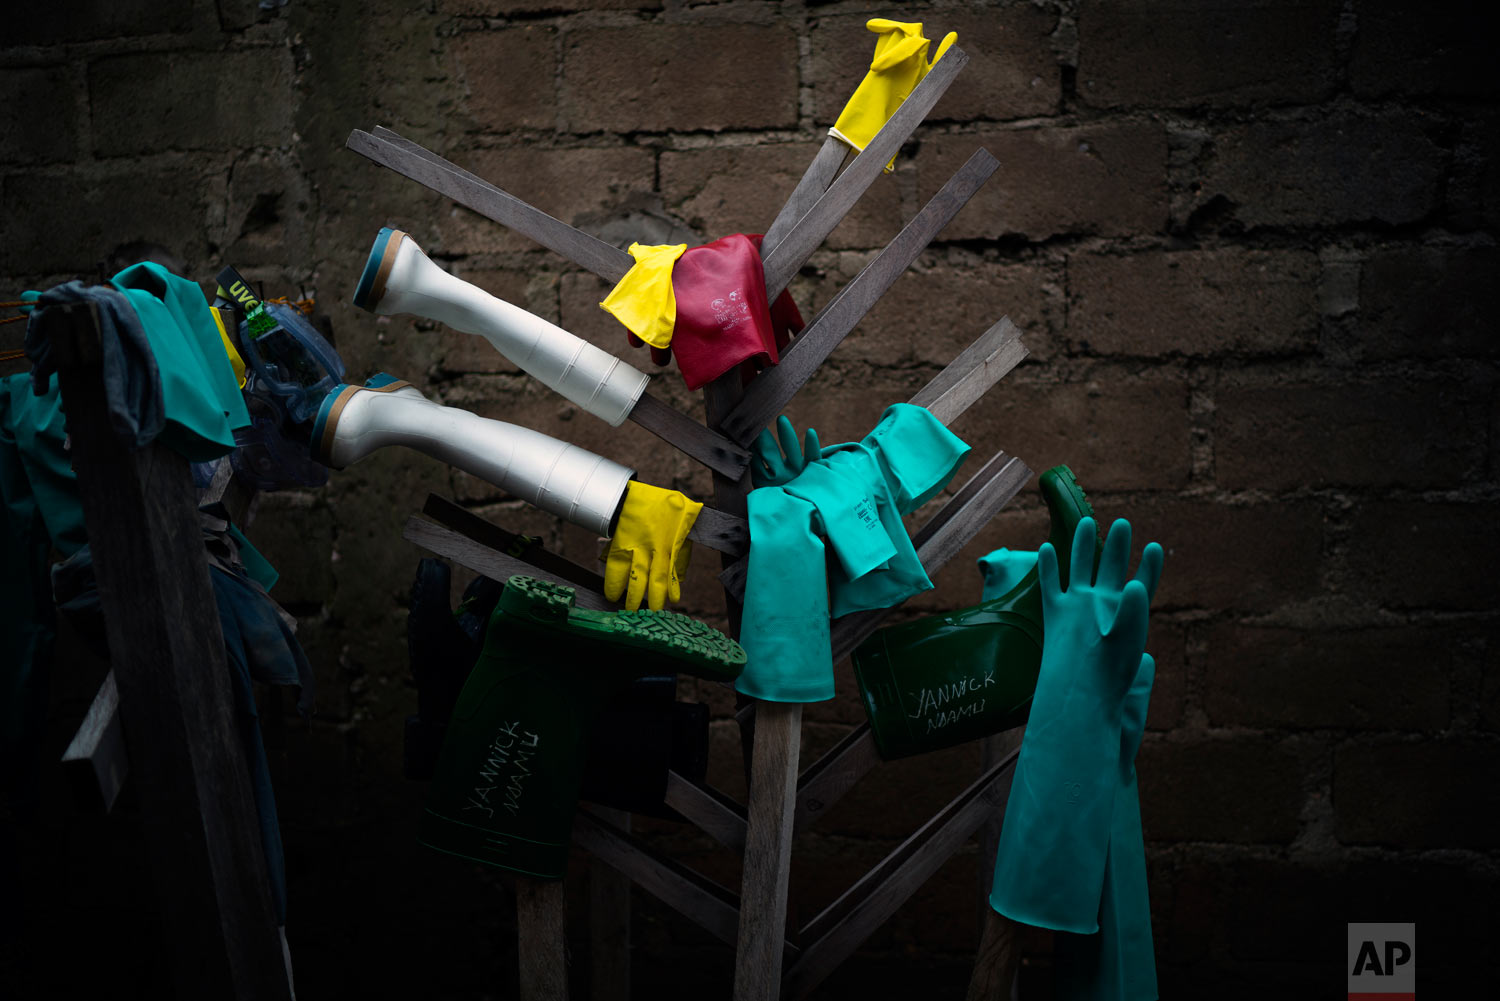 Rubber gloves and boots used by health workers treating Ebola patients hang to dry after being disinfected at an Ebola treatment center in Beni, Congo, July 12, 2019. (AP Photo/Jerome Delay)